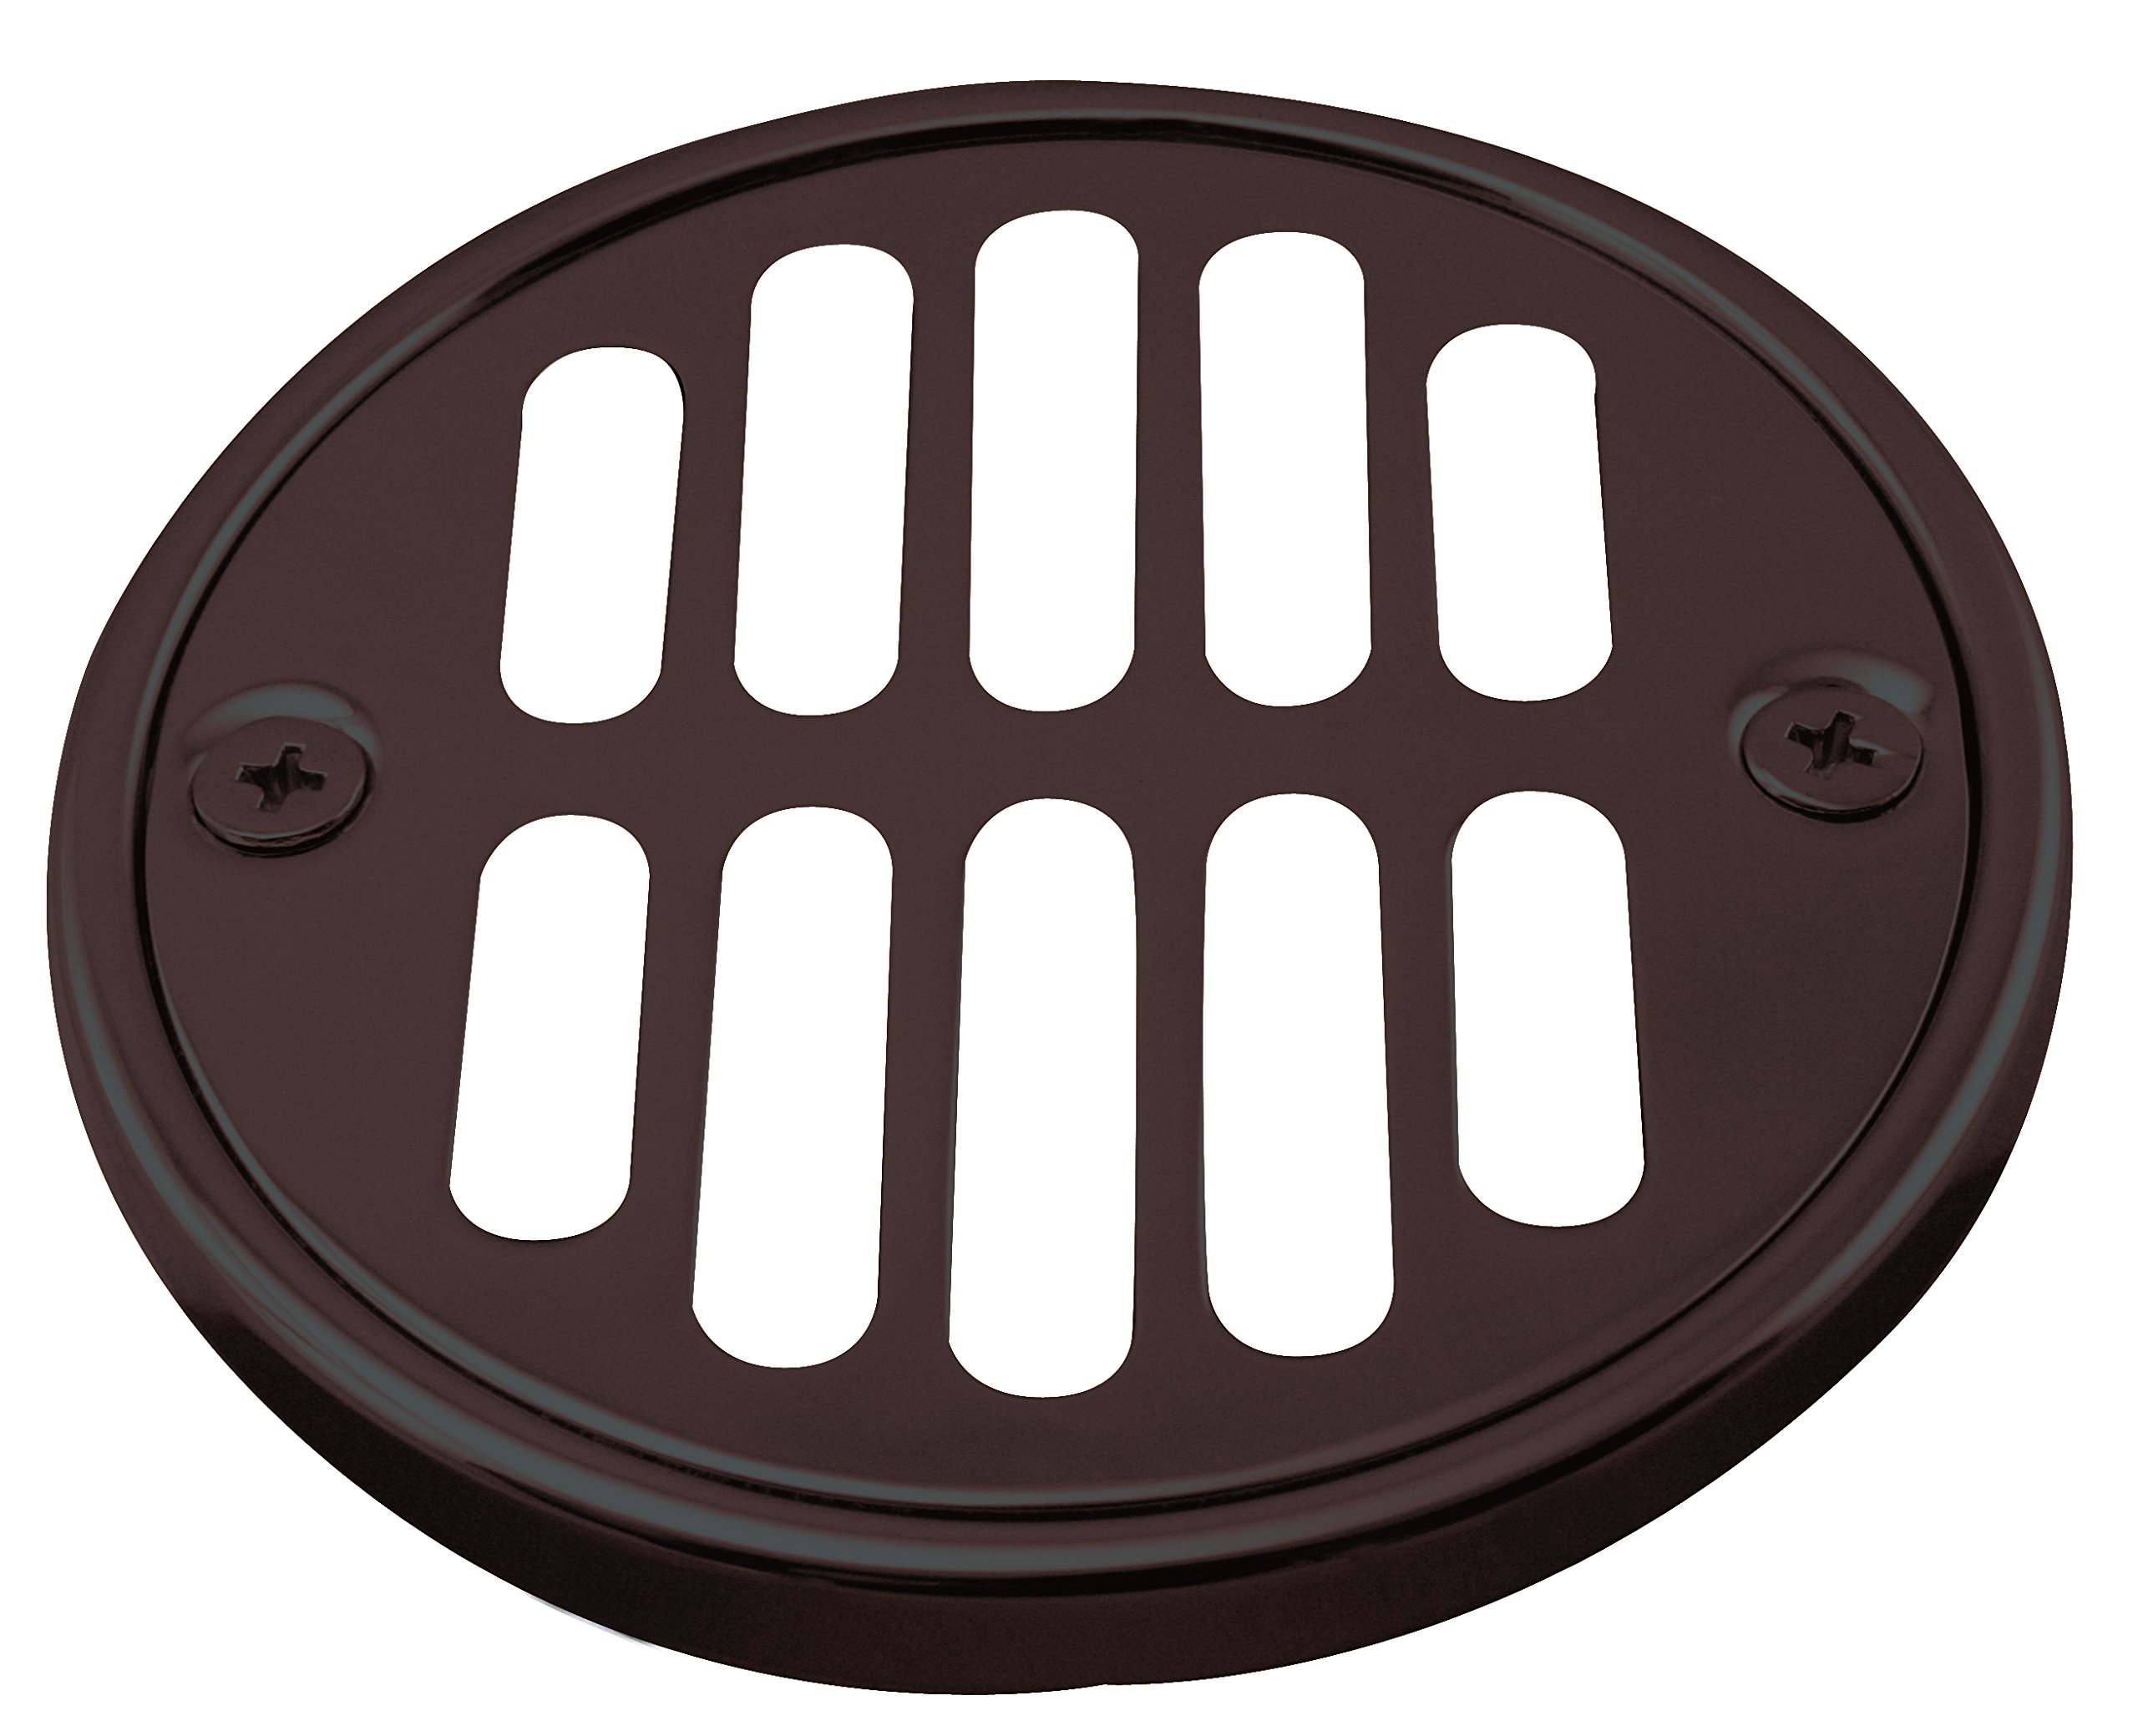 Westbrass Shower Strainer Set with Screws, Grill and Crown, Oil Rubbed Bronze, D312-12